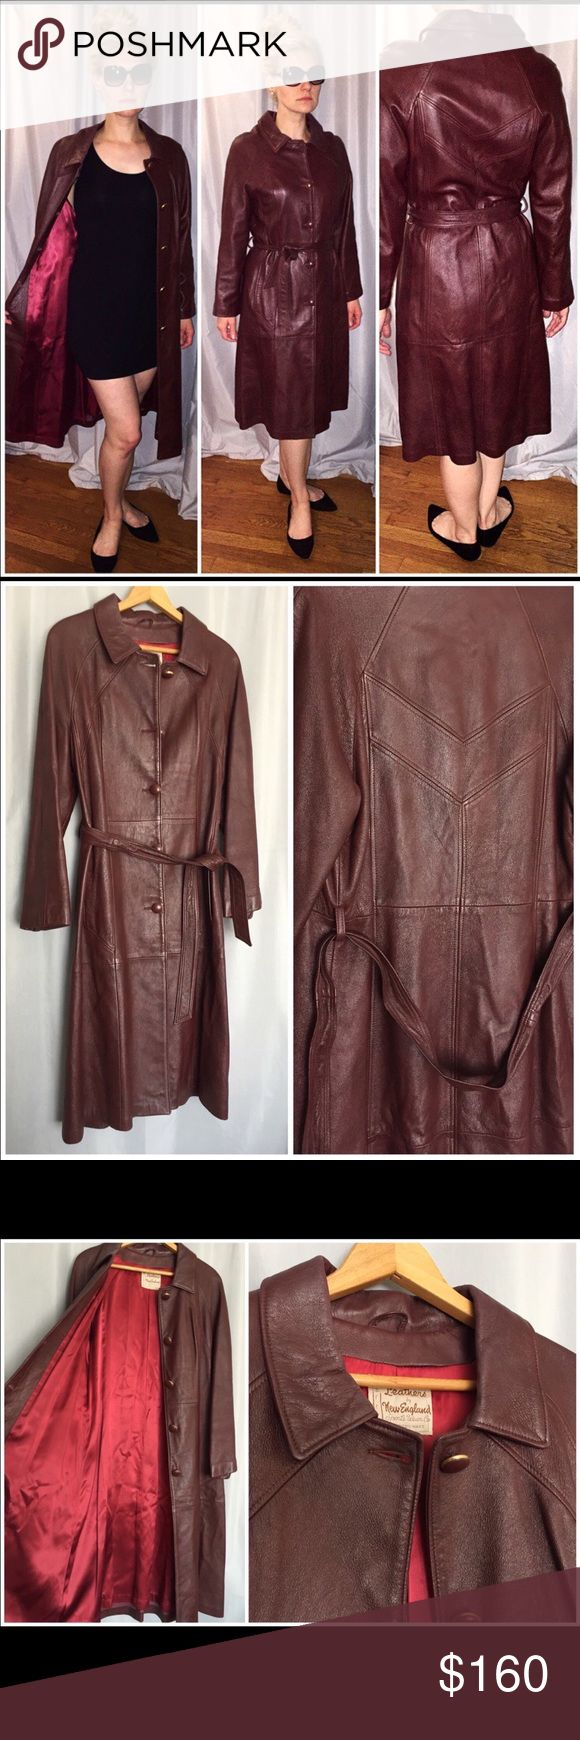 Leather trench coat Leather trench coat size L vintage Jackets & Coats Trench Coats